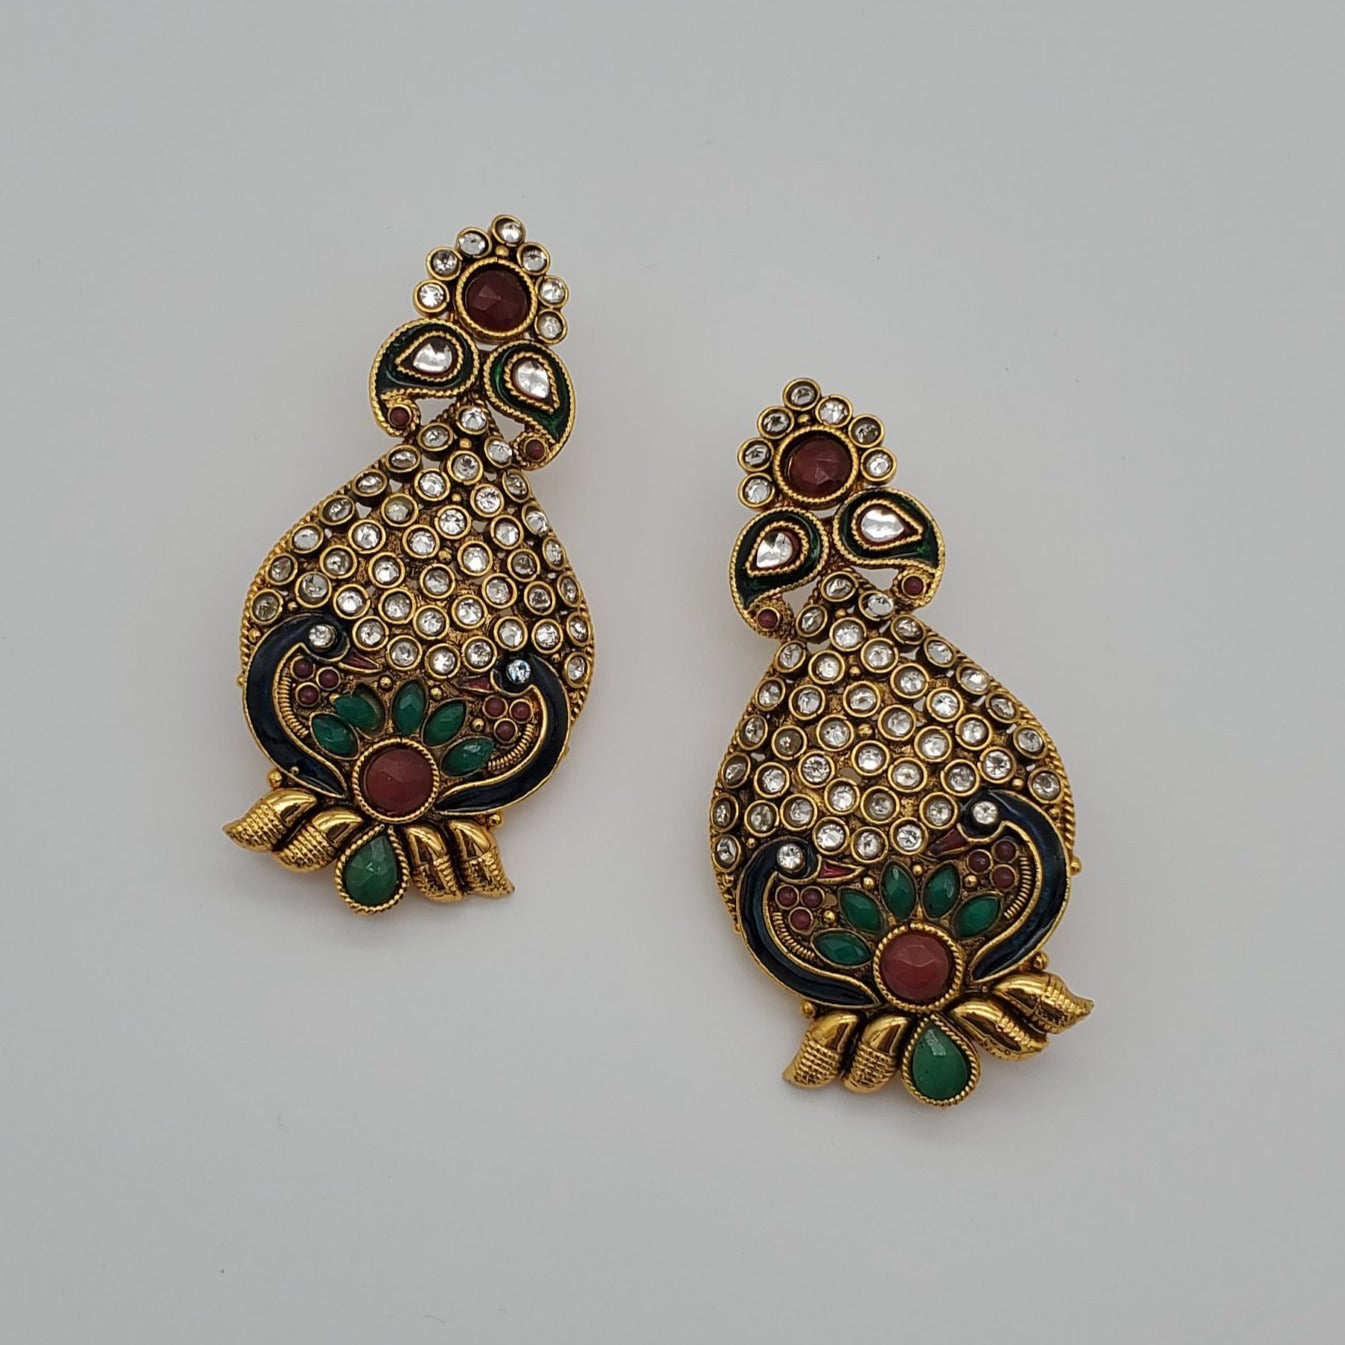 Indian Jewelry/Peacock earring/Antique gold finish earring/kundan jewelry/designer earring/fashion earring/glam jewelry/traditional earring